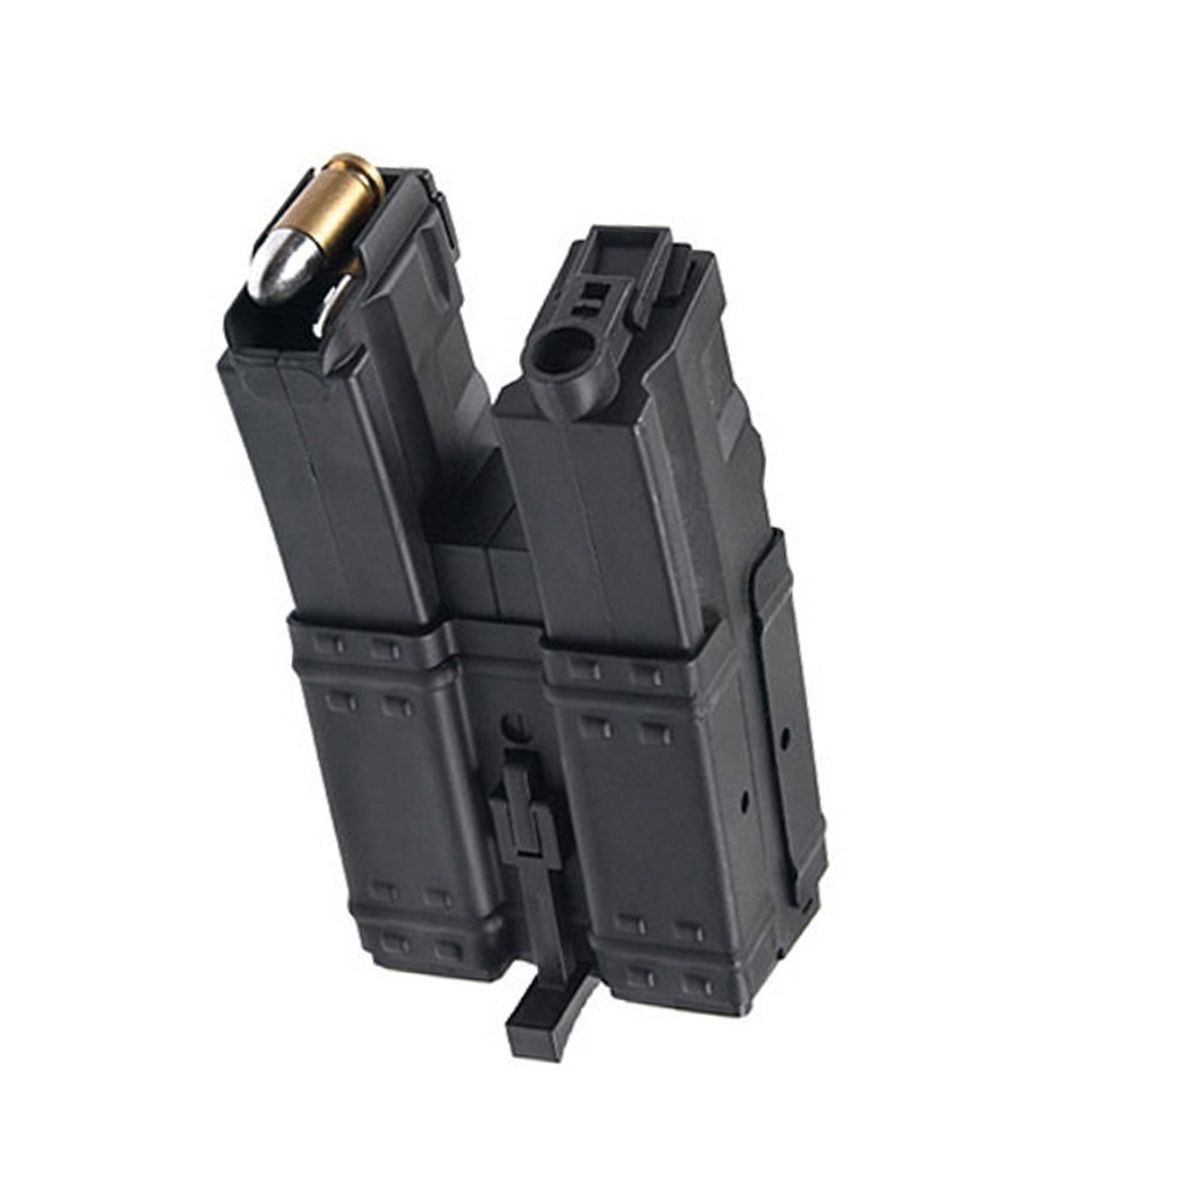 CYMA AIRSOFT MAGAZINE MP5 250 RD DOUBLE STACK HI-CAP BLACK WIND TYPE